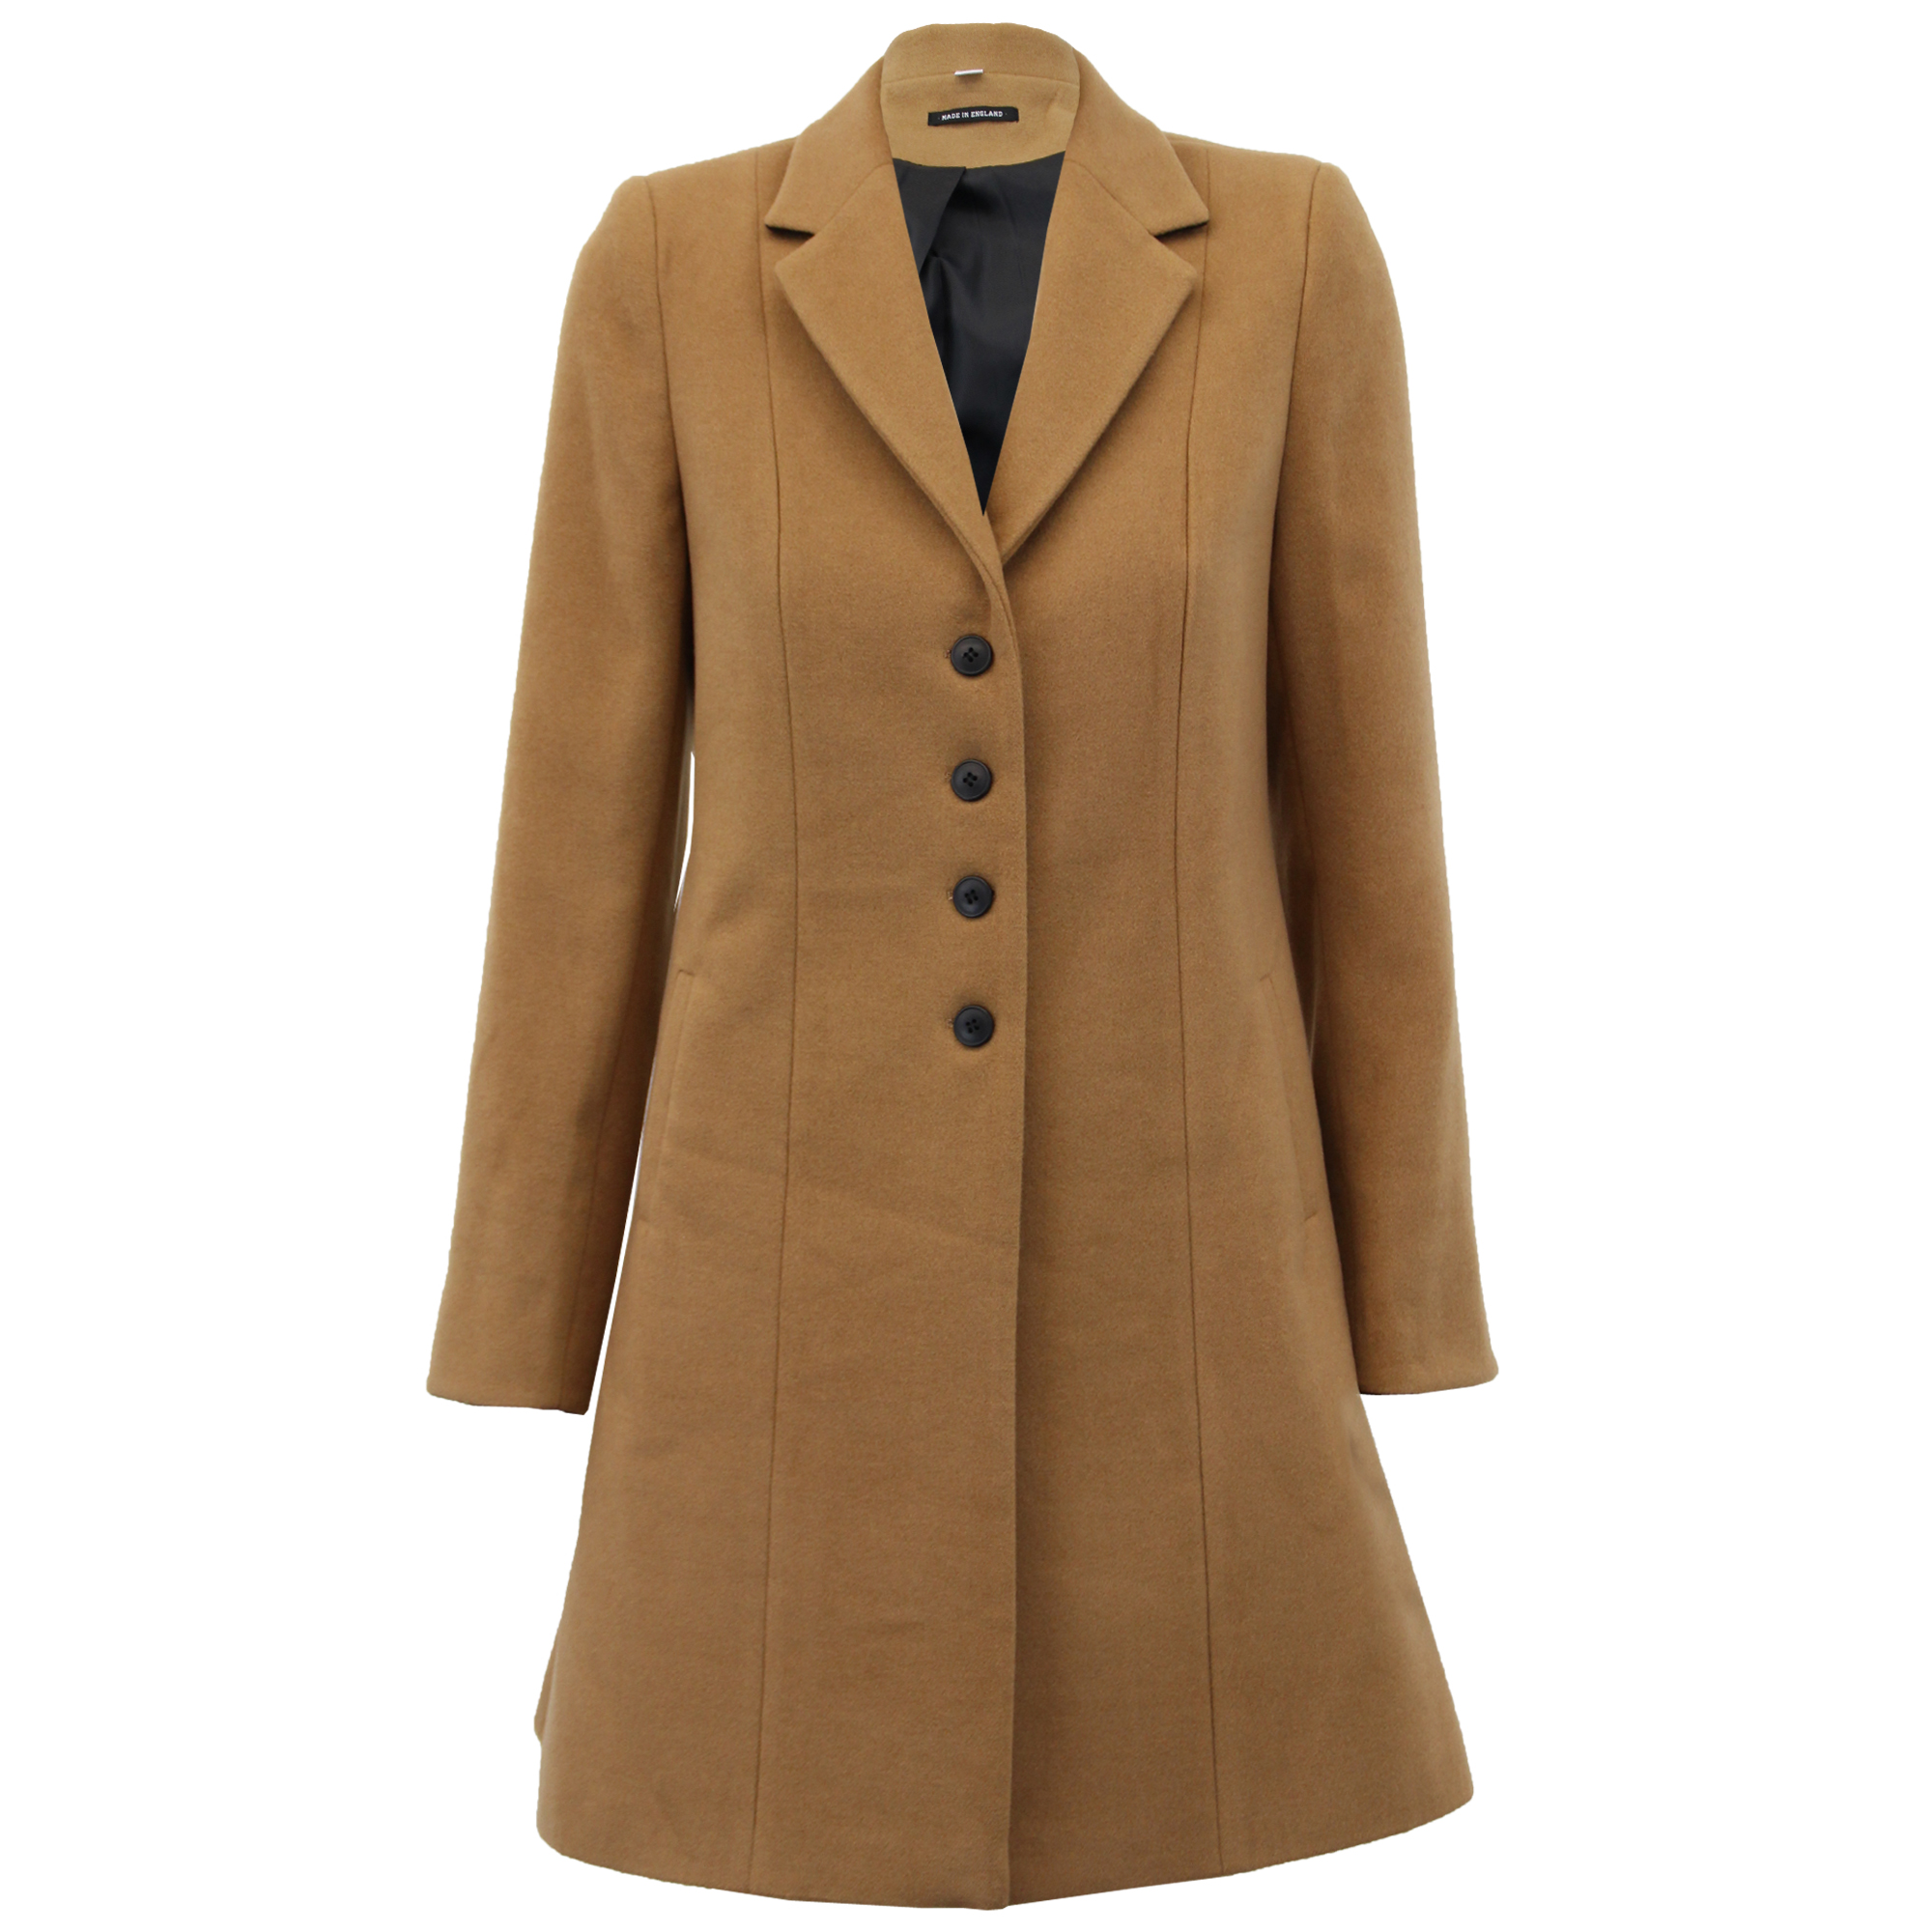 Our women's wool coats and jackets are lovingly constructed of the finest wool. We have designed a tantalizing collection of wool jackets, wool vests, wool capes, and women's wool sweaters to keep you comfortable, warm, and looking sharp.